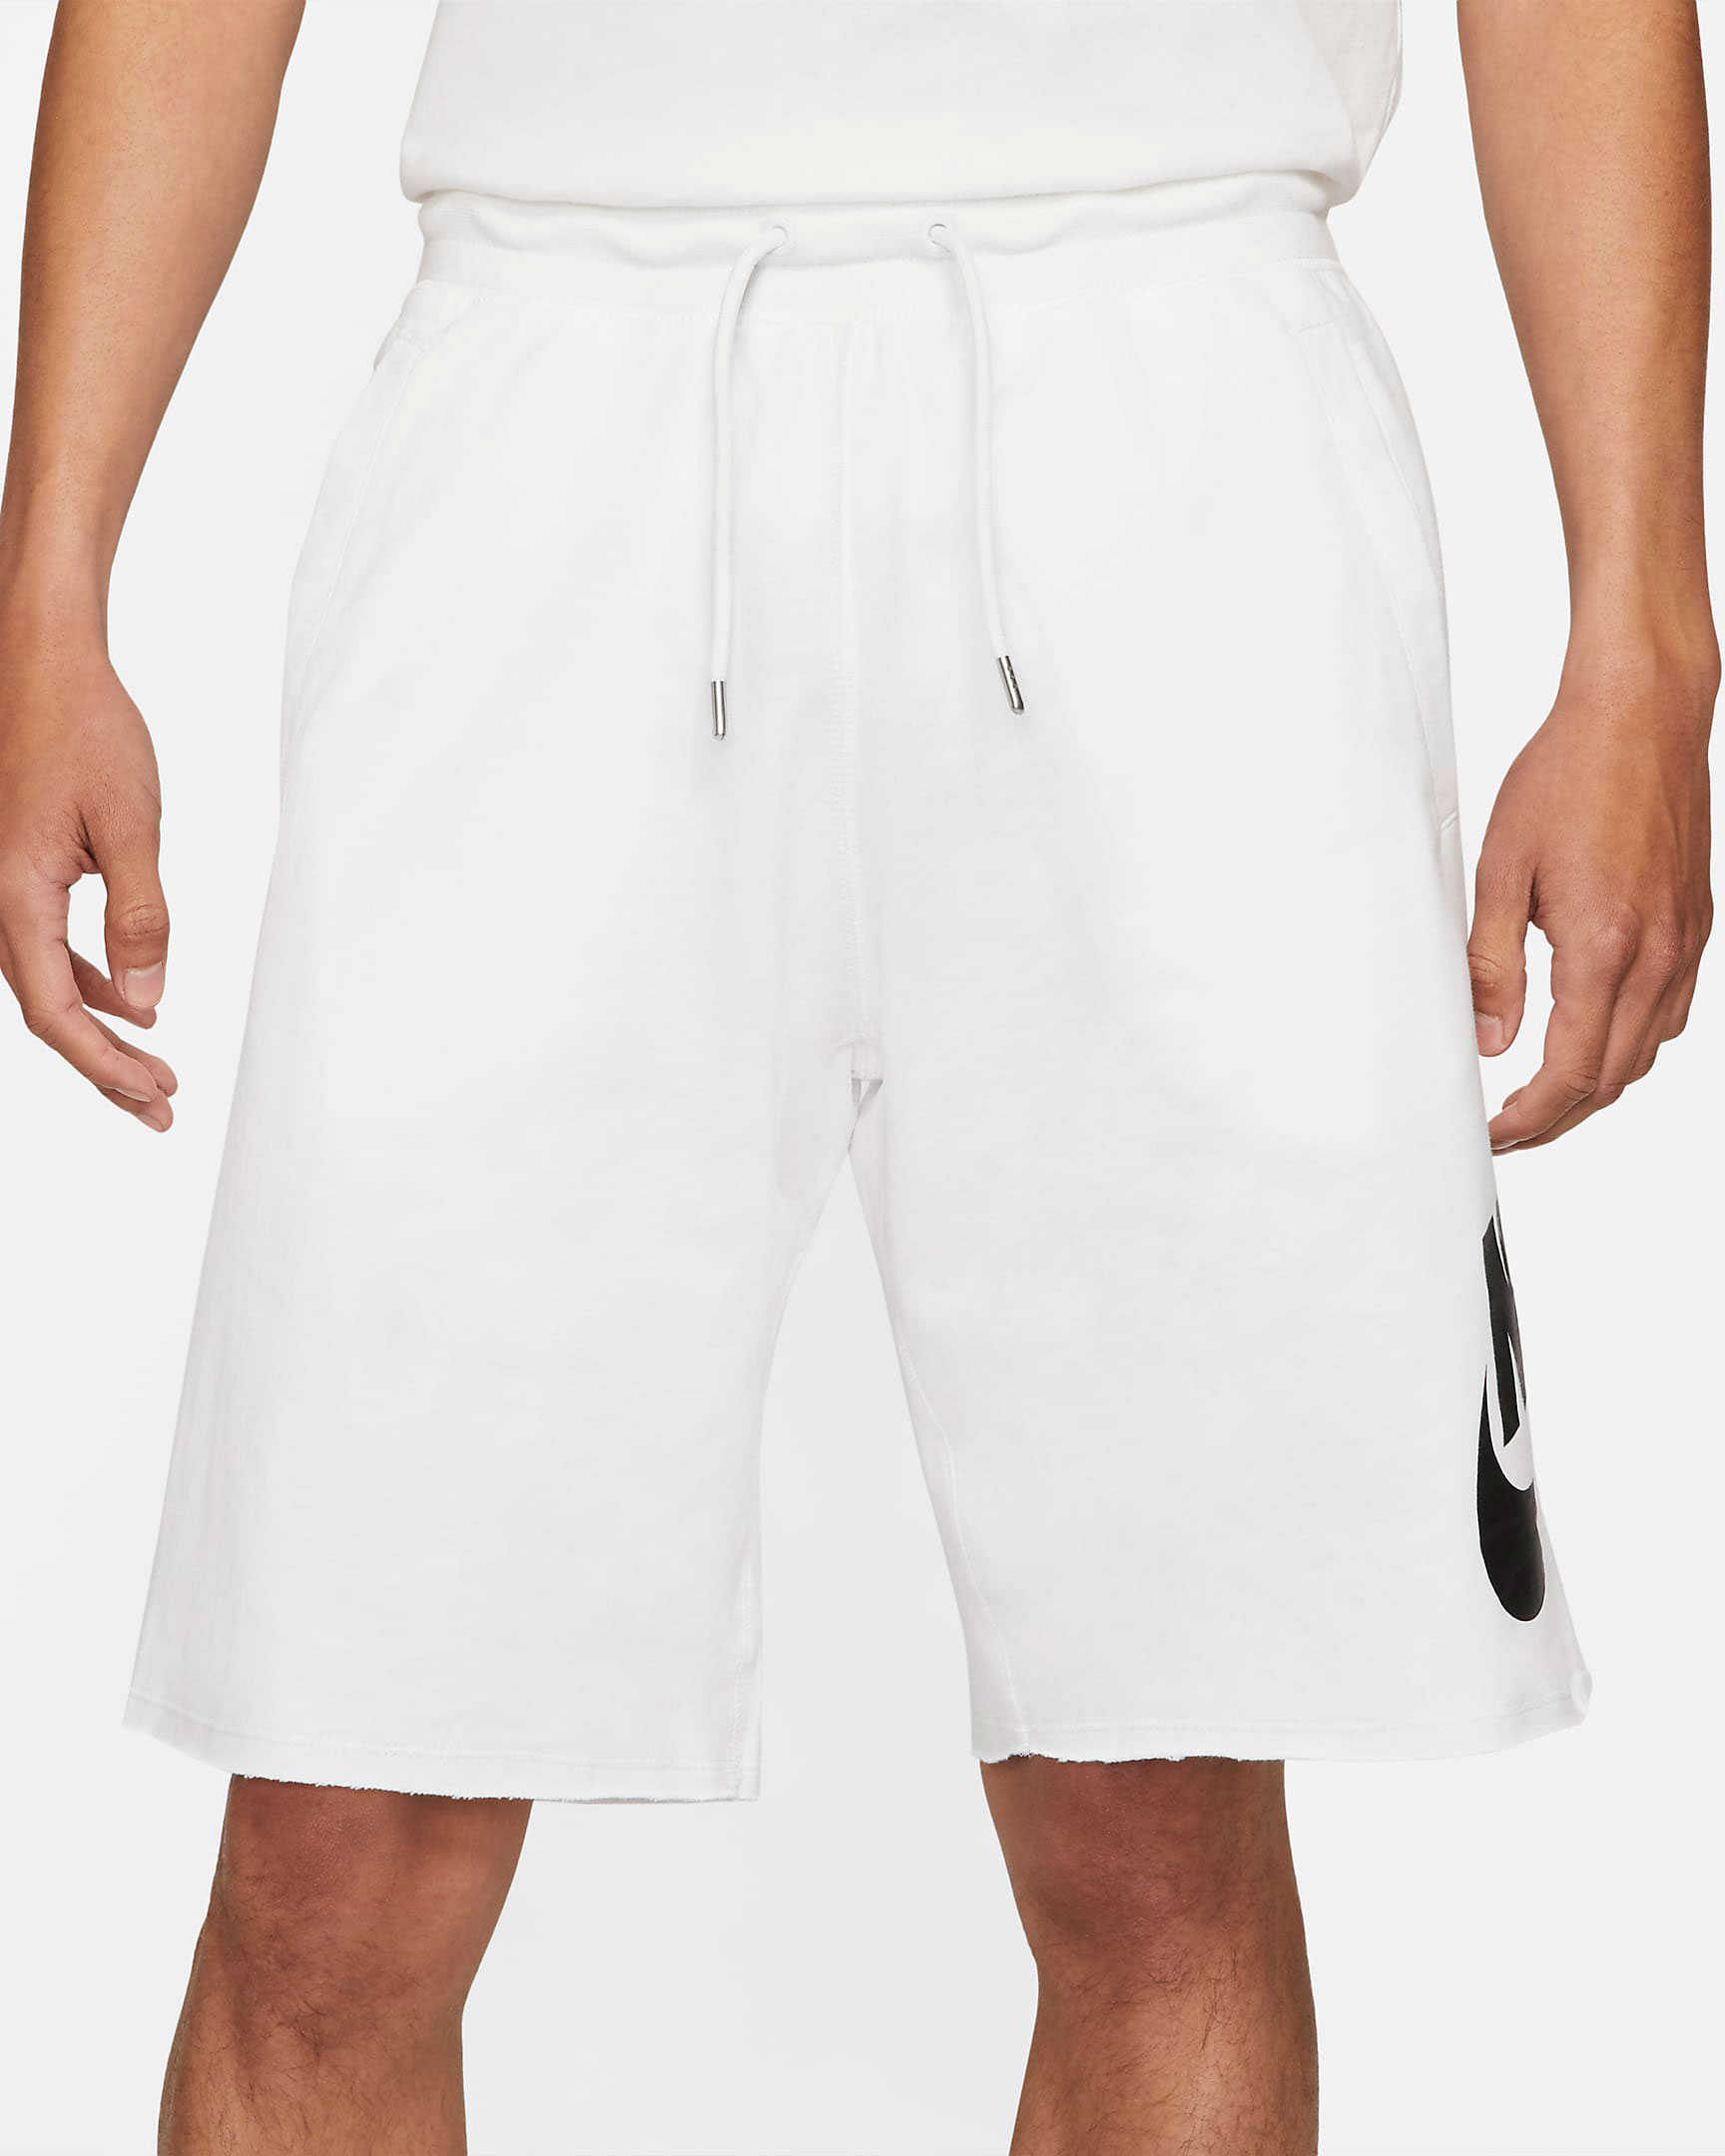 nike-dunk-low-white-black-shorts-1